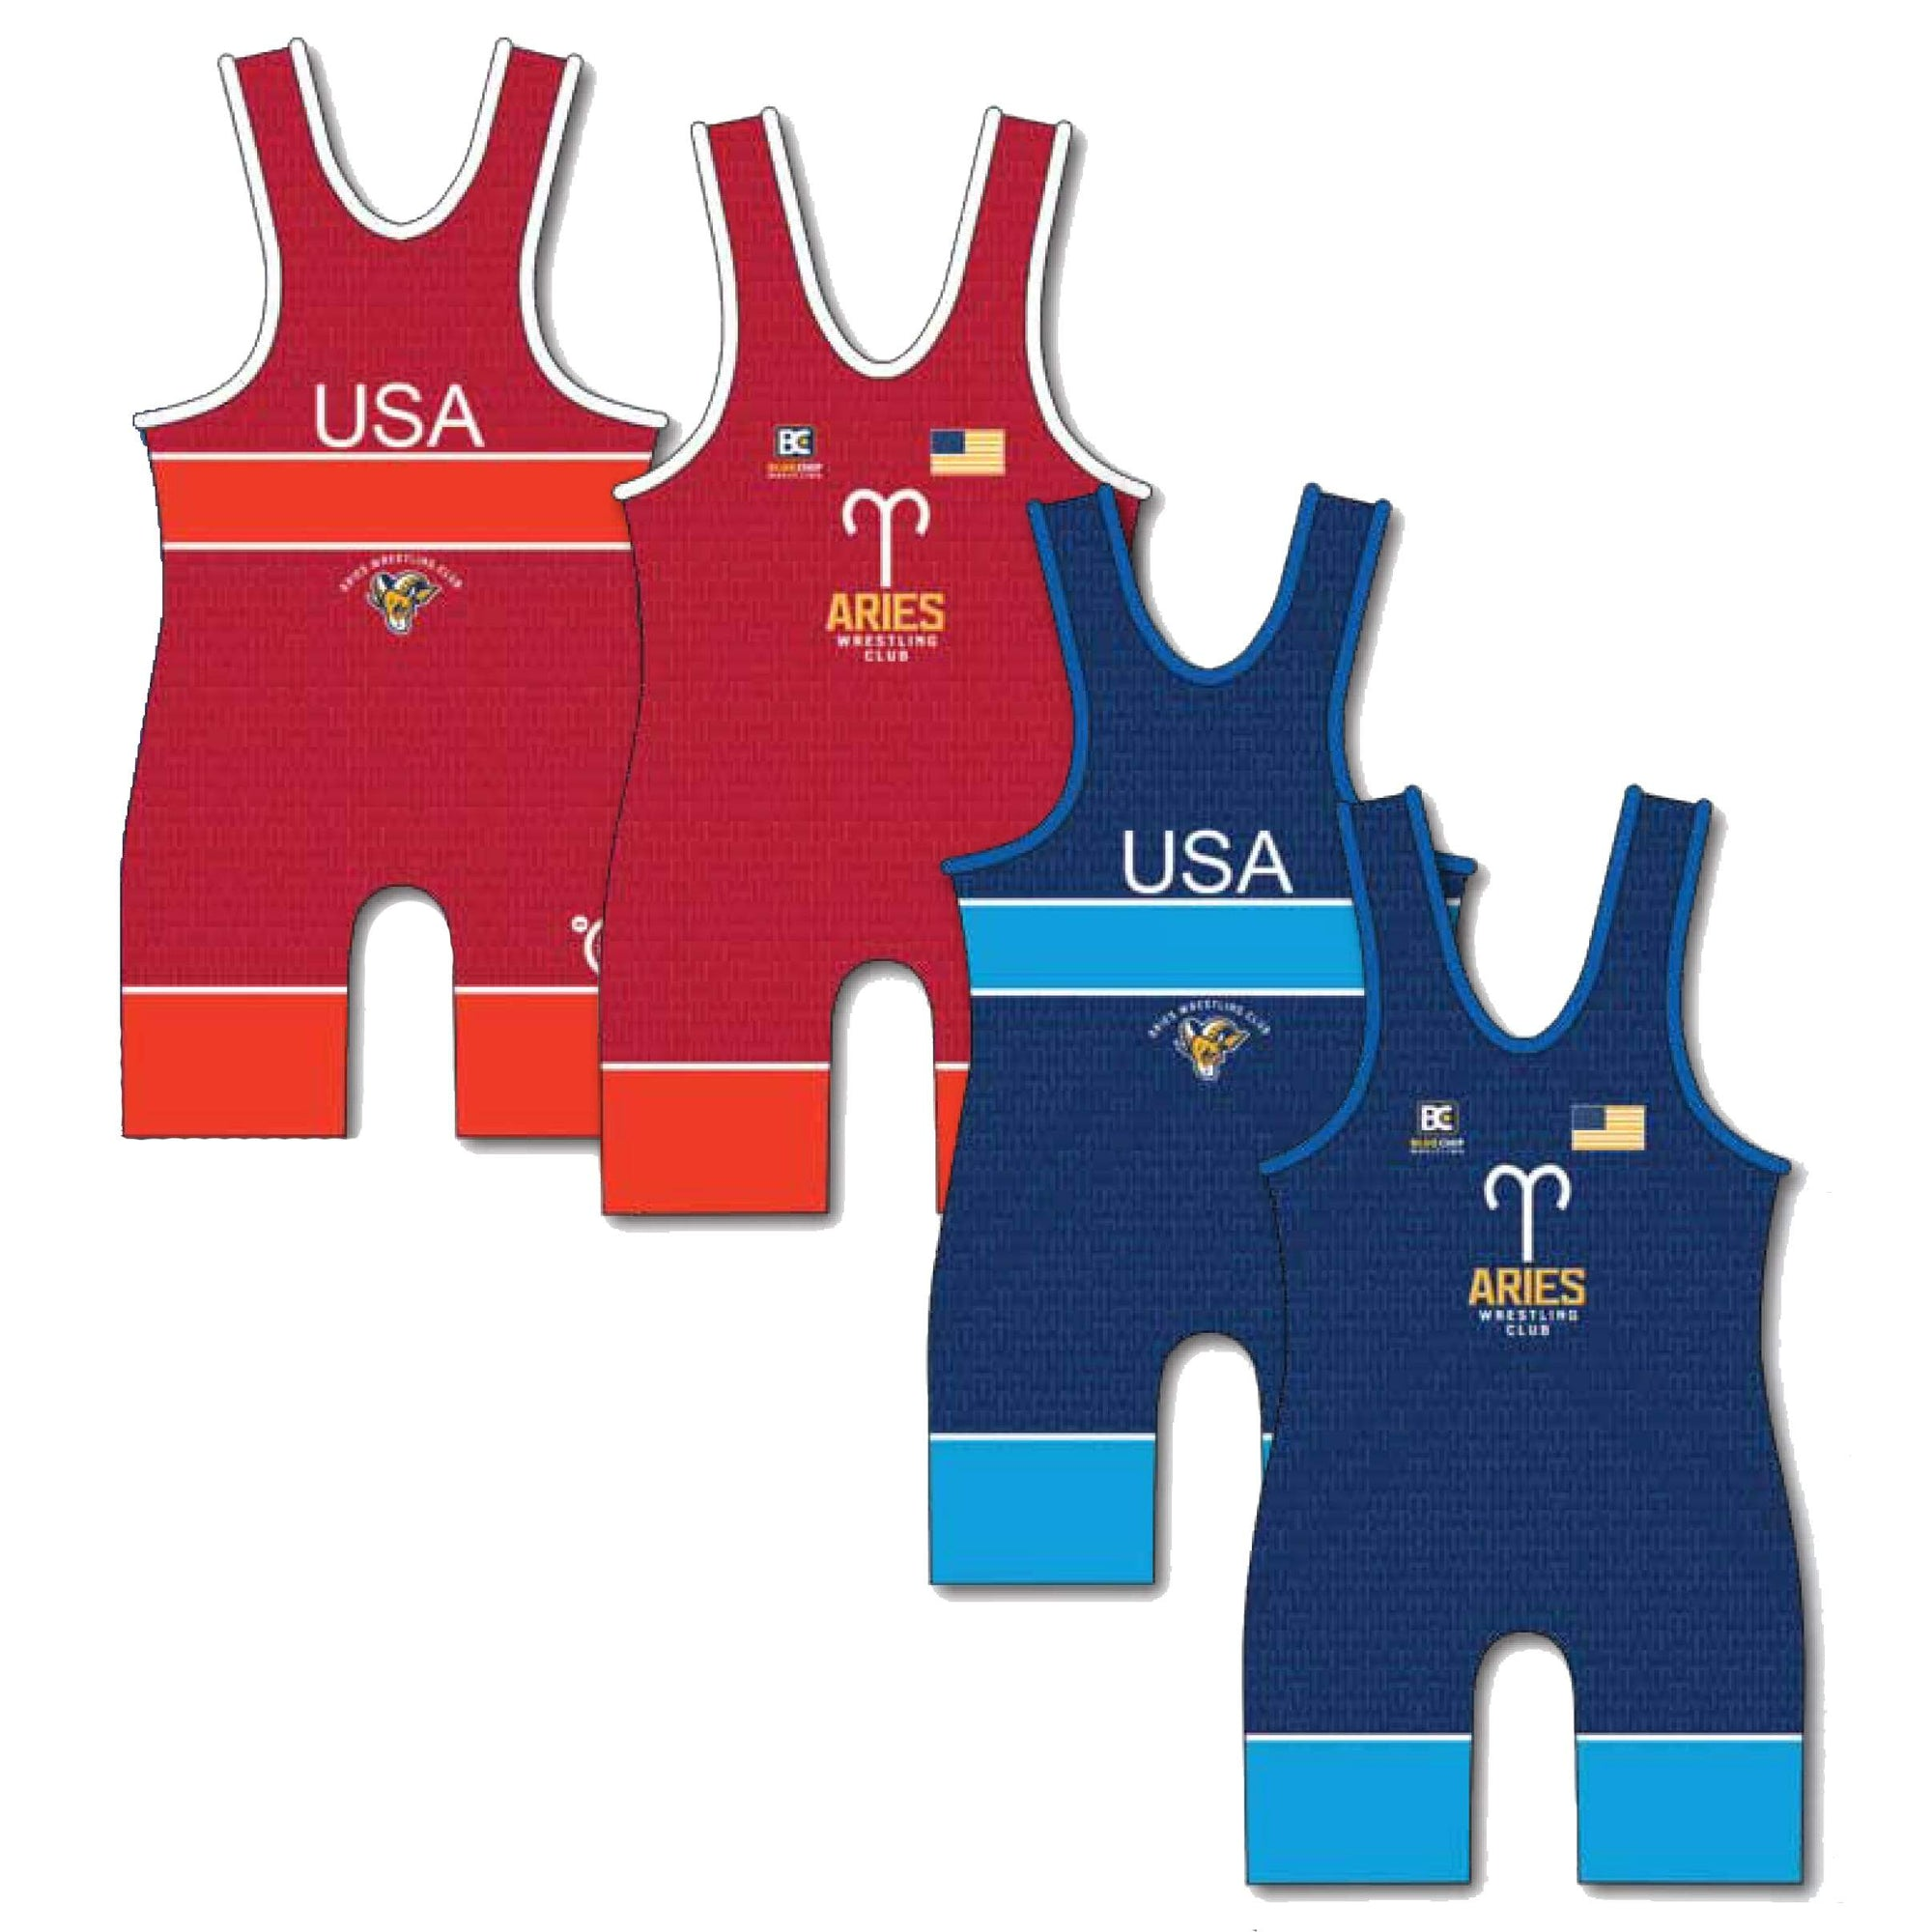 Competition Pack #5 (2 Singlets)